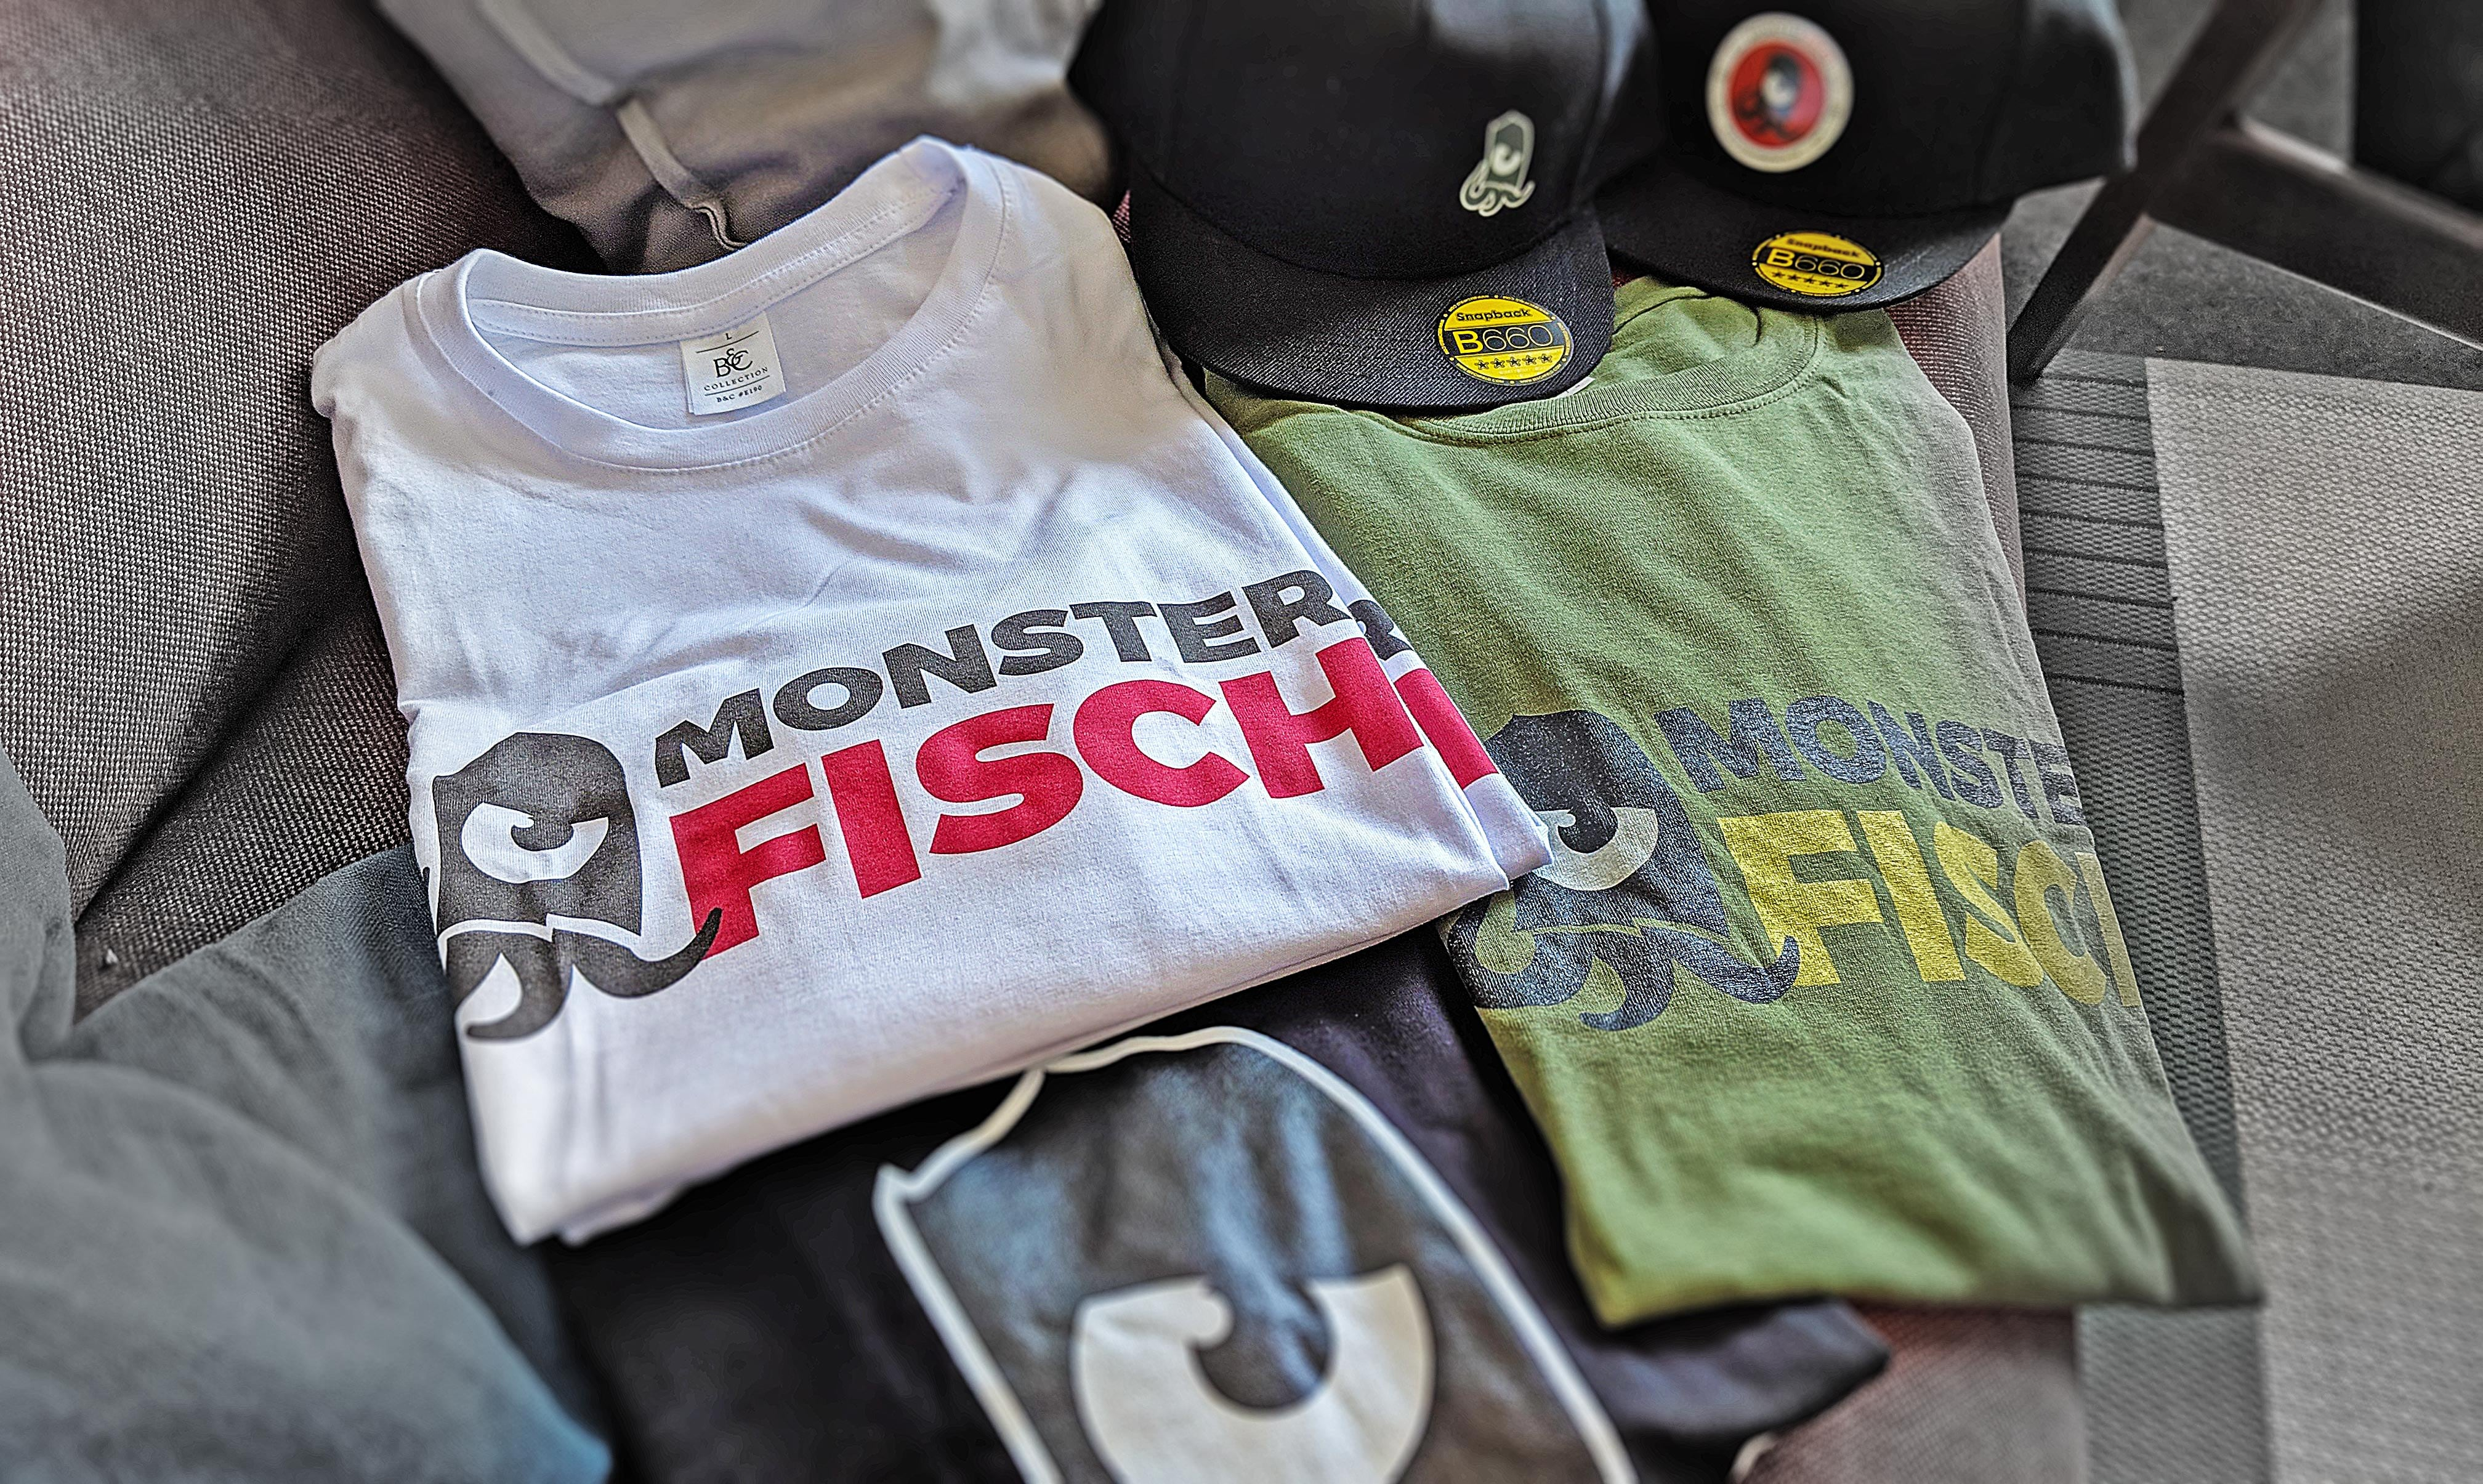 Monsterfisch Merch